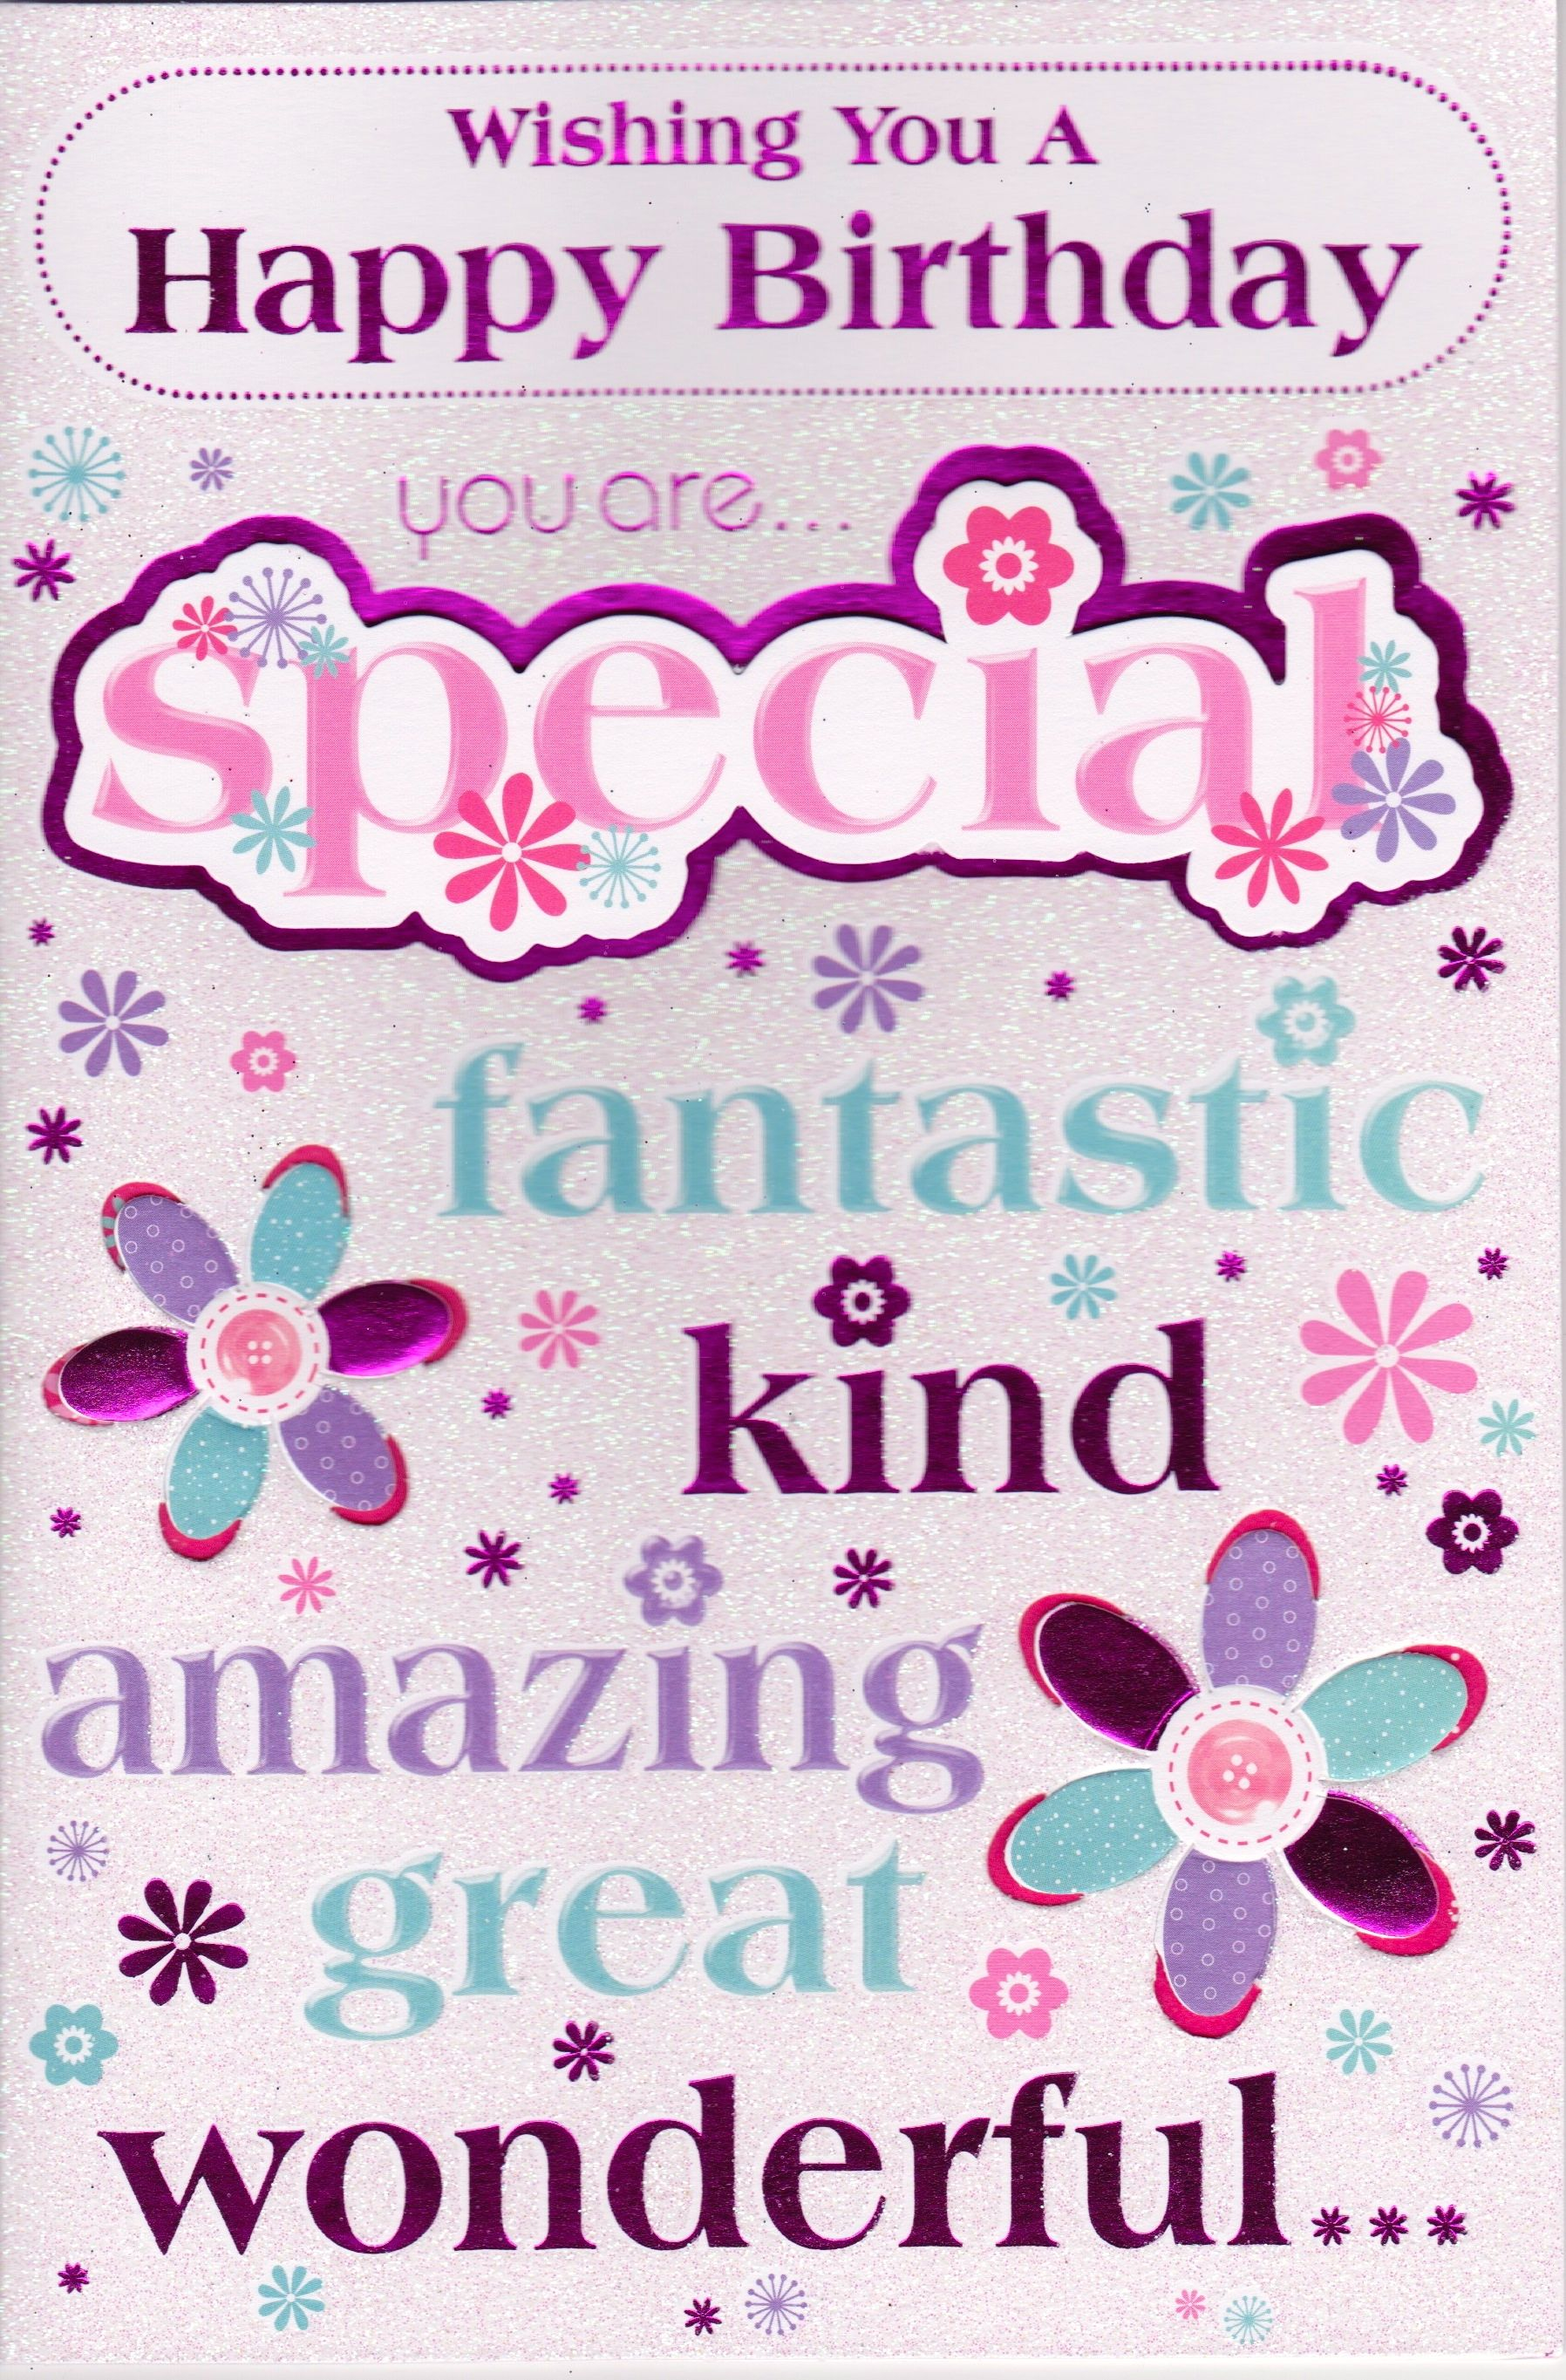 Birthday Wishes For Cousin Funny ~ Happy birthday cousin sister images wishing you a pinterest